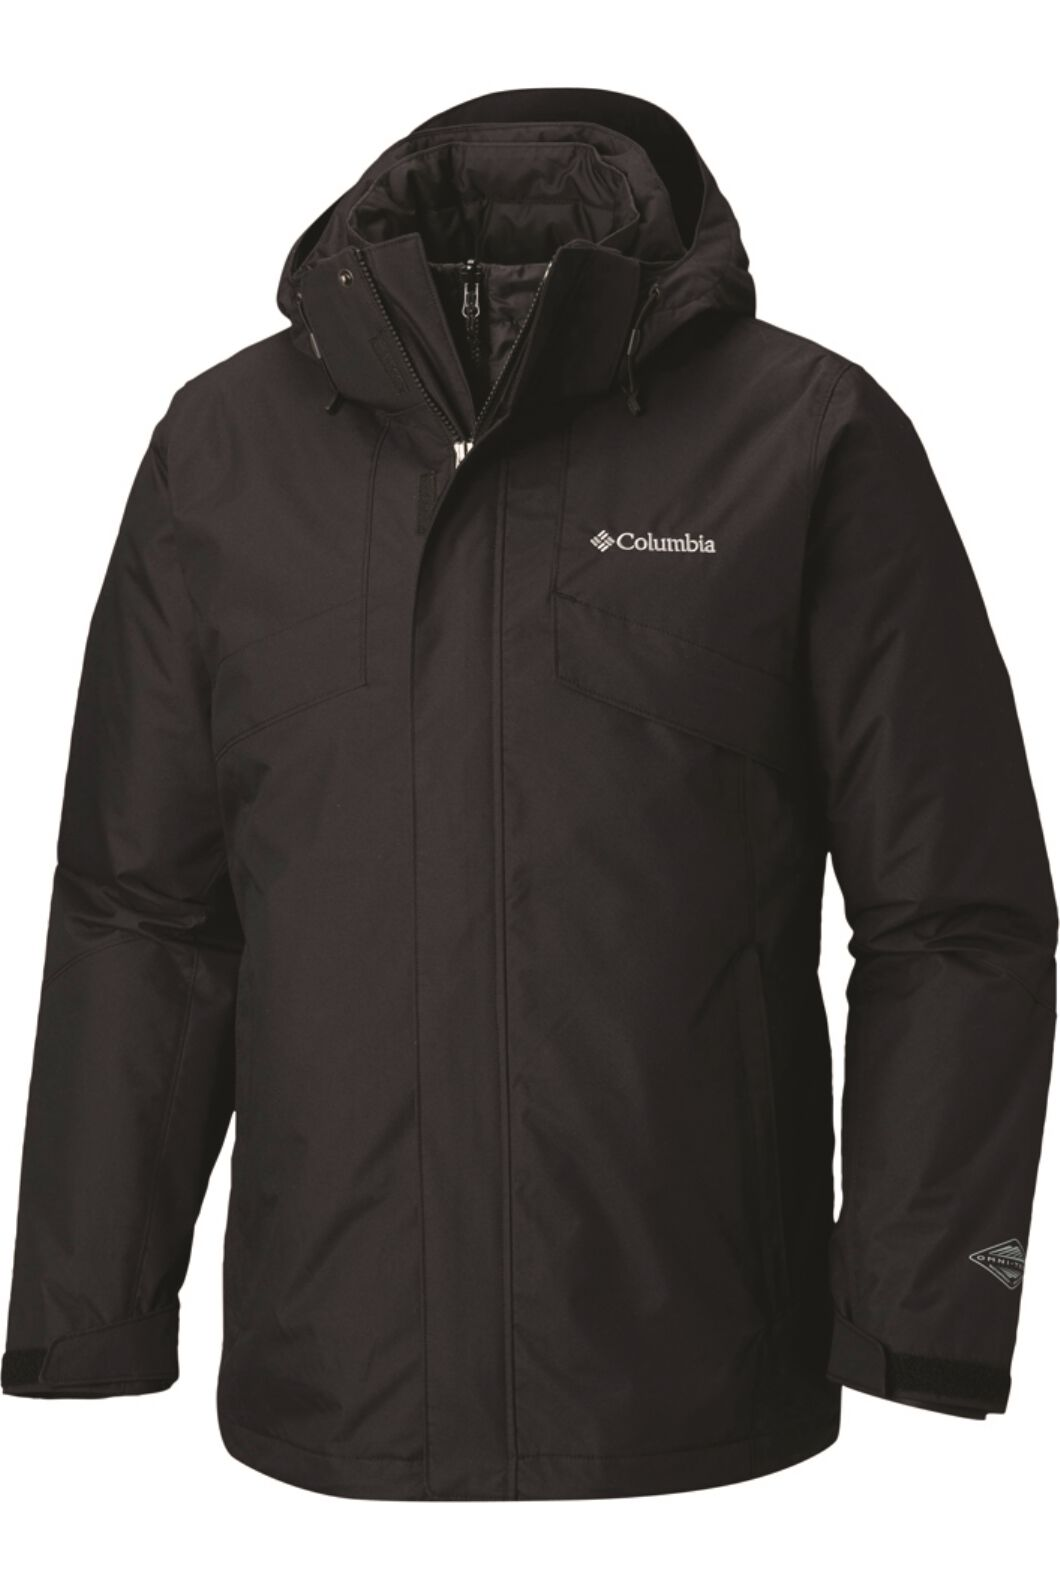 Columbia Men's Bugaboo II Insulated Interchange Jacket, Black, hi-res